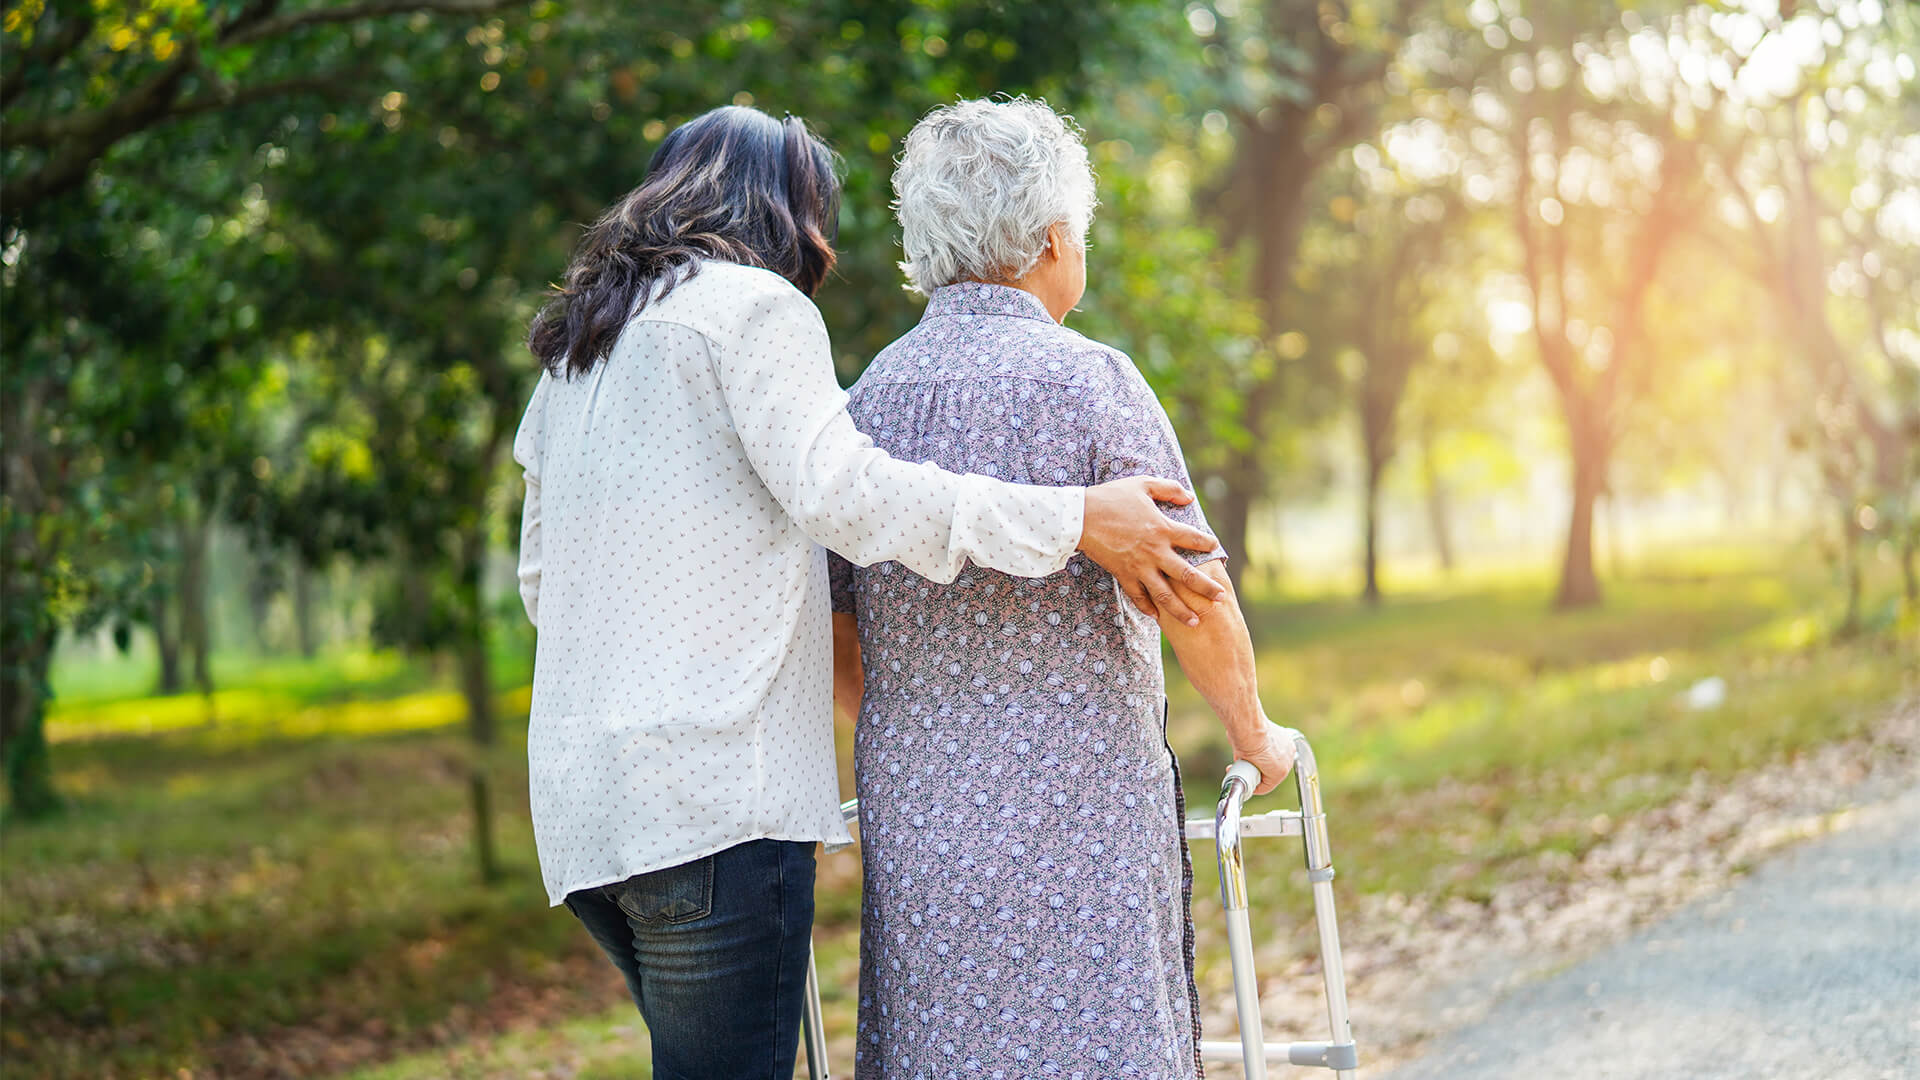 Clinical Trial Demonstrates Power of Technology to Transform Care For Vulnerable and Elderly Patients